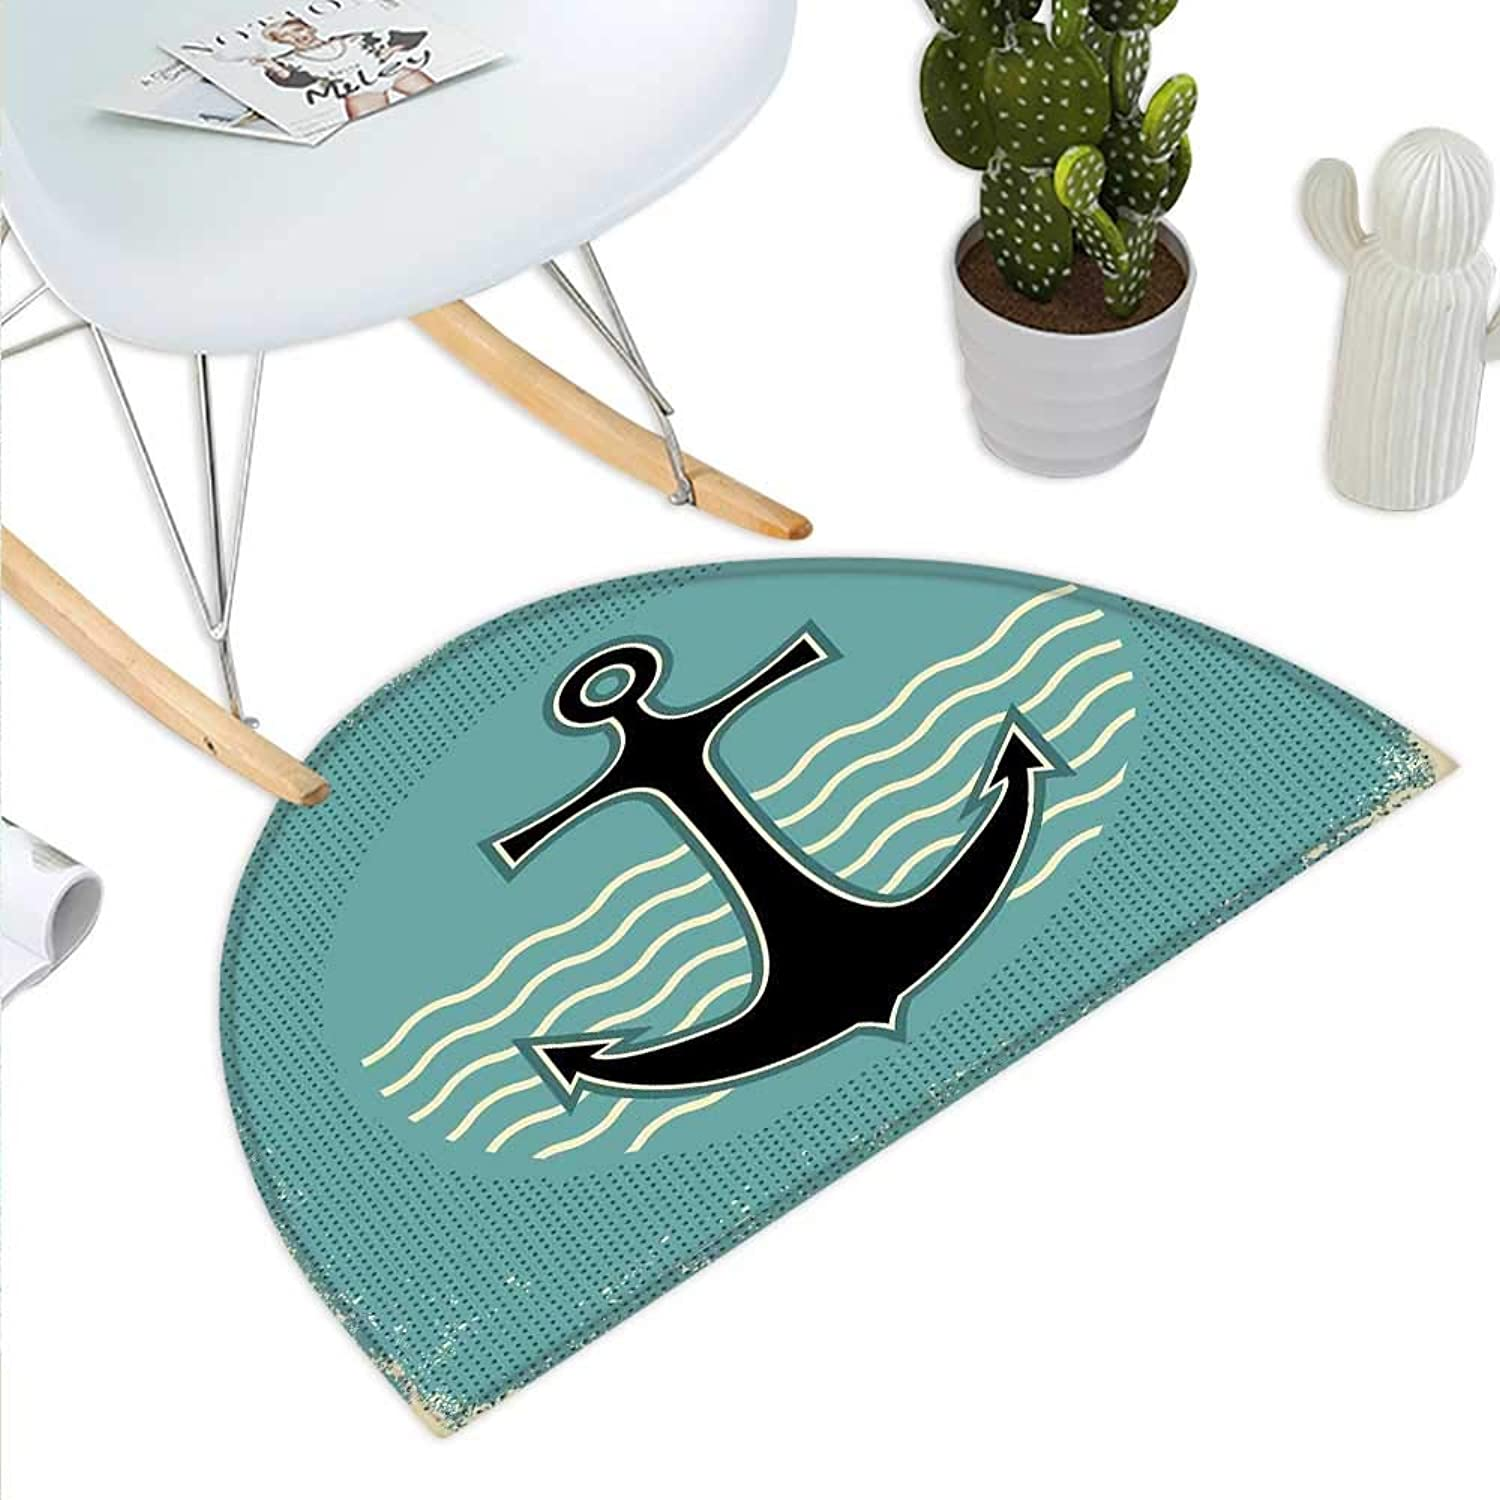 Anchor Semicircle Doormat Vintage Style Anchor Design with Wave Water color Antique Nostalgic Sea Sign Halfmoon doormats H 35.4  xD 53.1  Teal Black Yellow